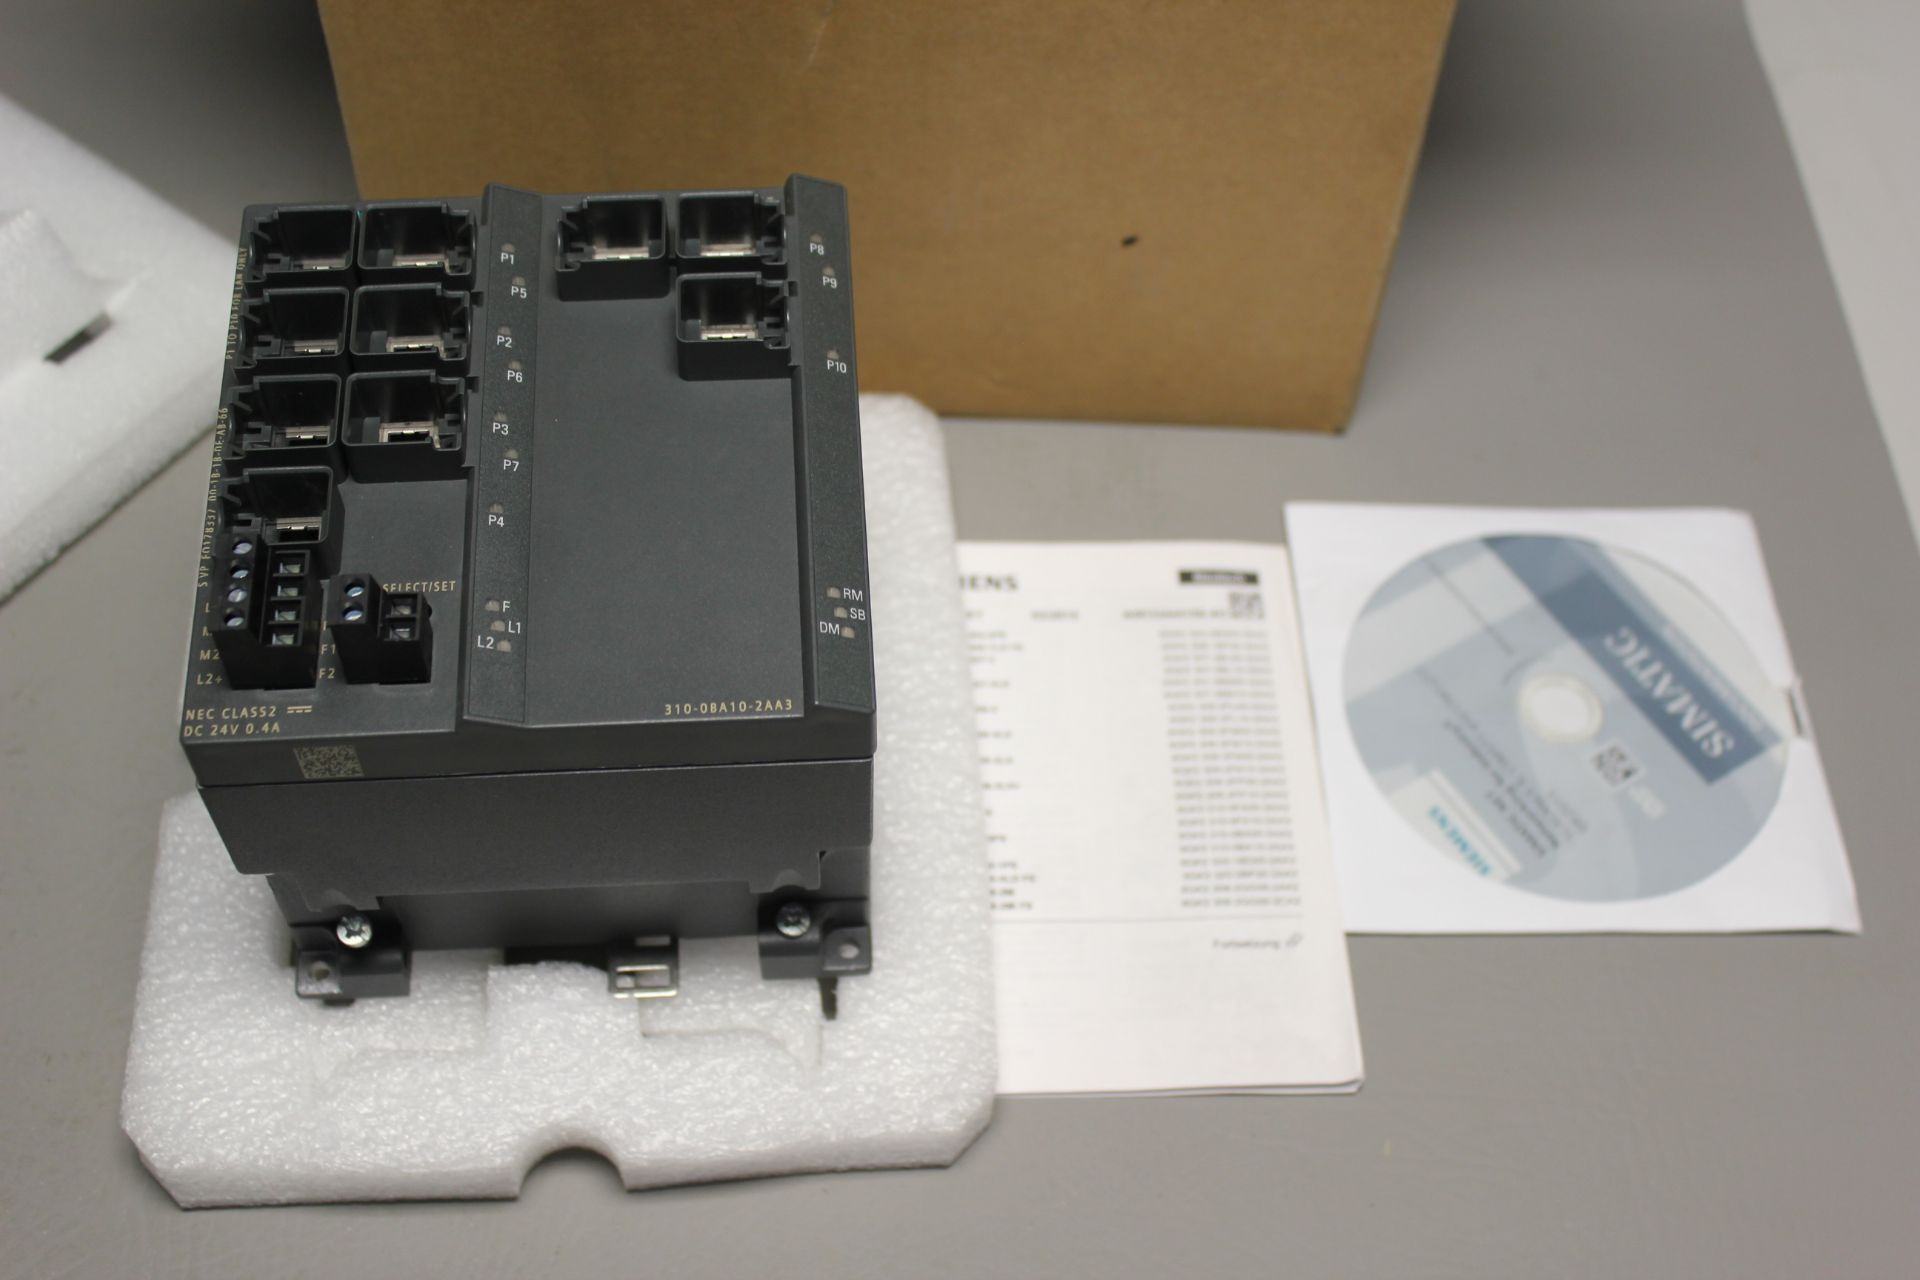 NEW SIEMENS SCALANCE MANAGED INDUSTRIAL ETHERNET SWITCH - Image 4 of 7